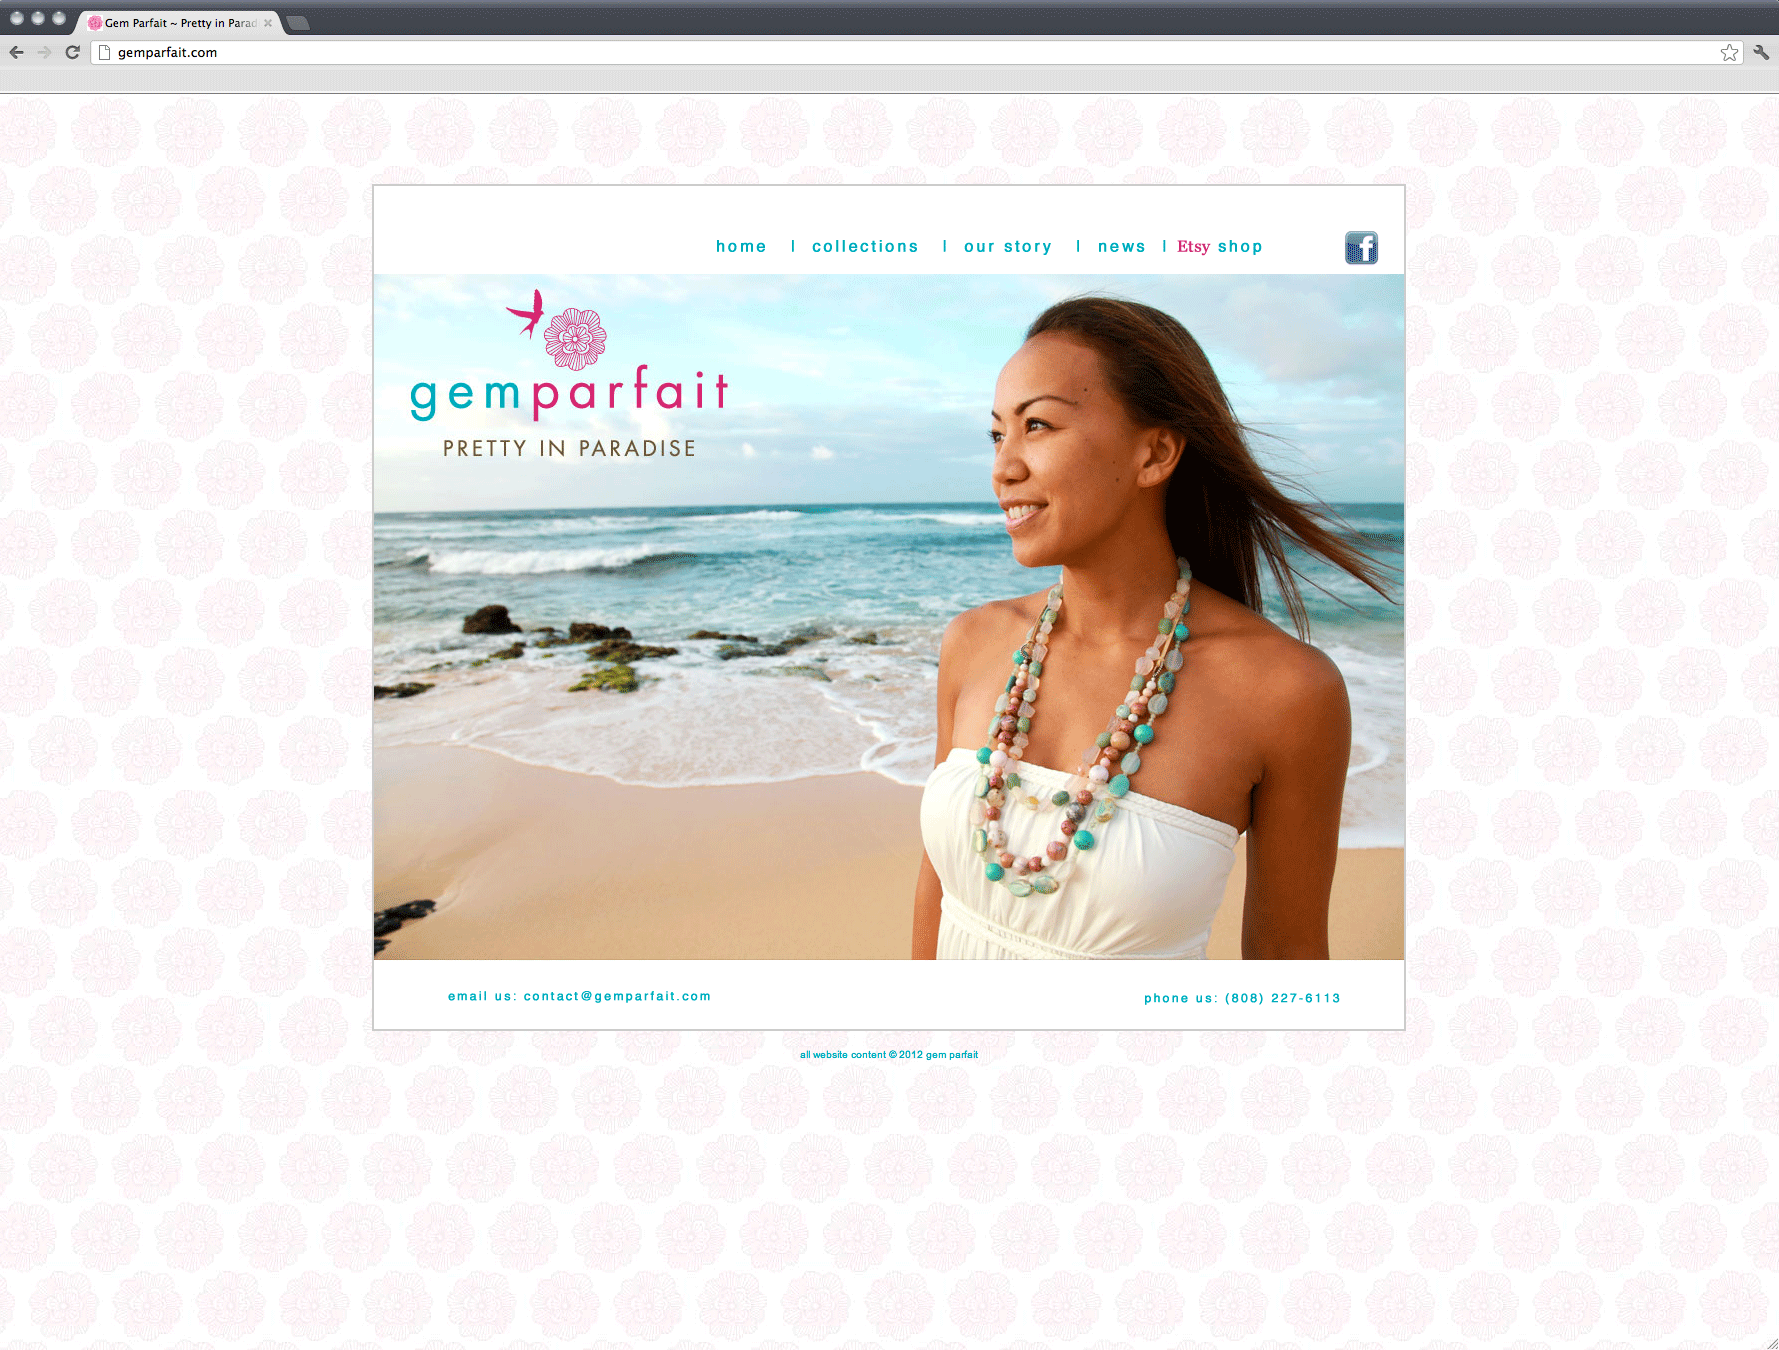 Gem Parfait website